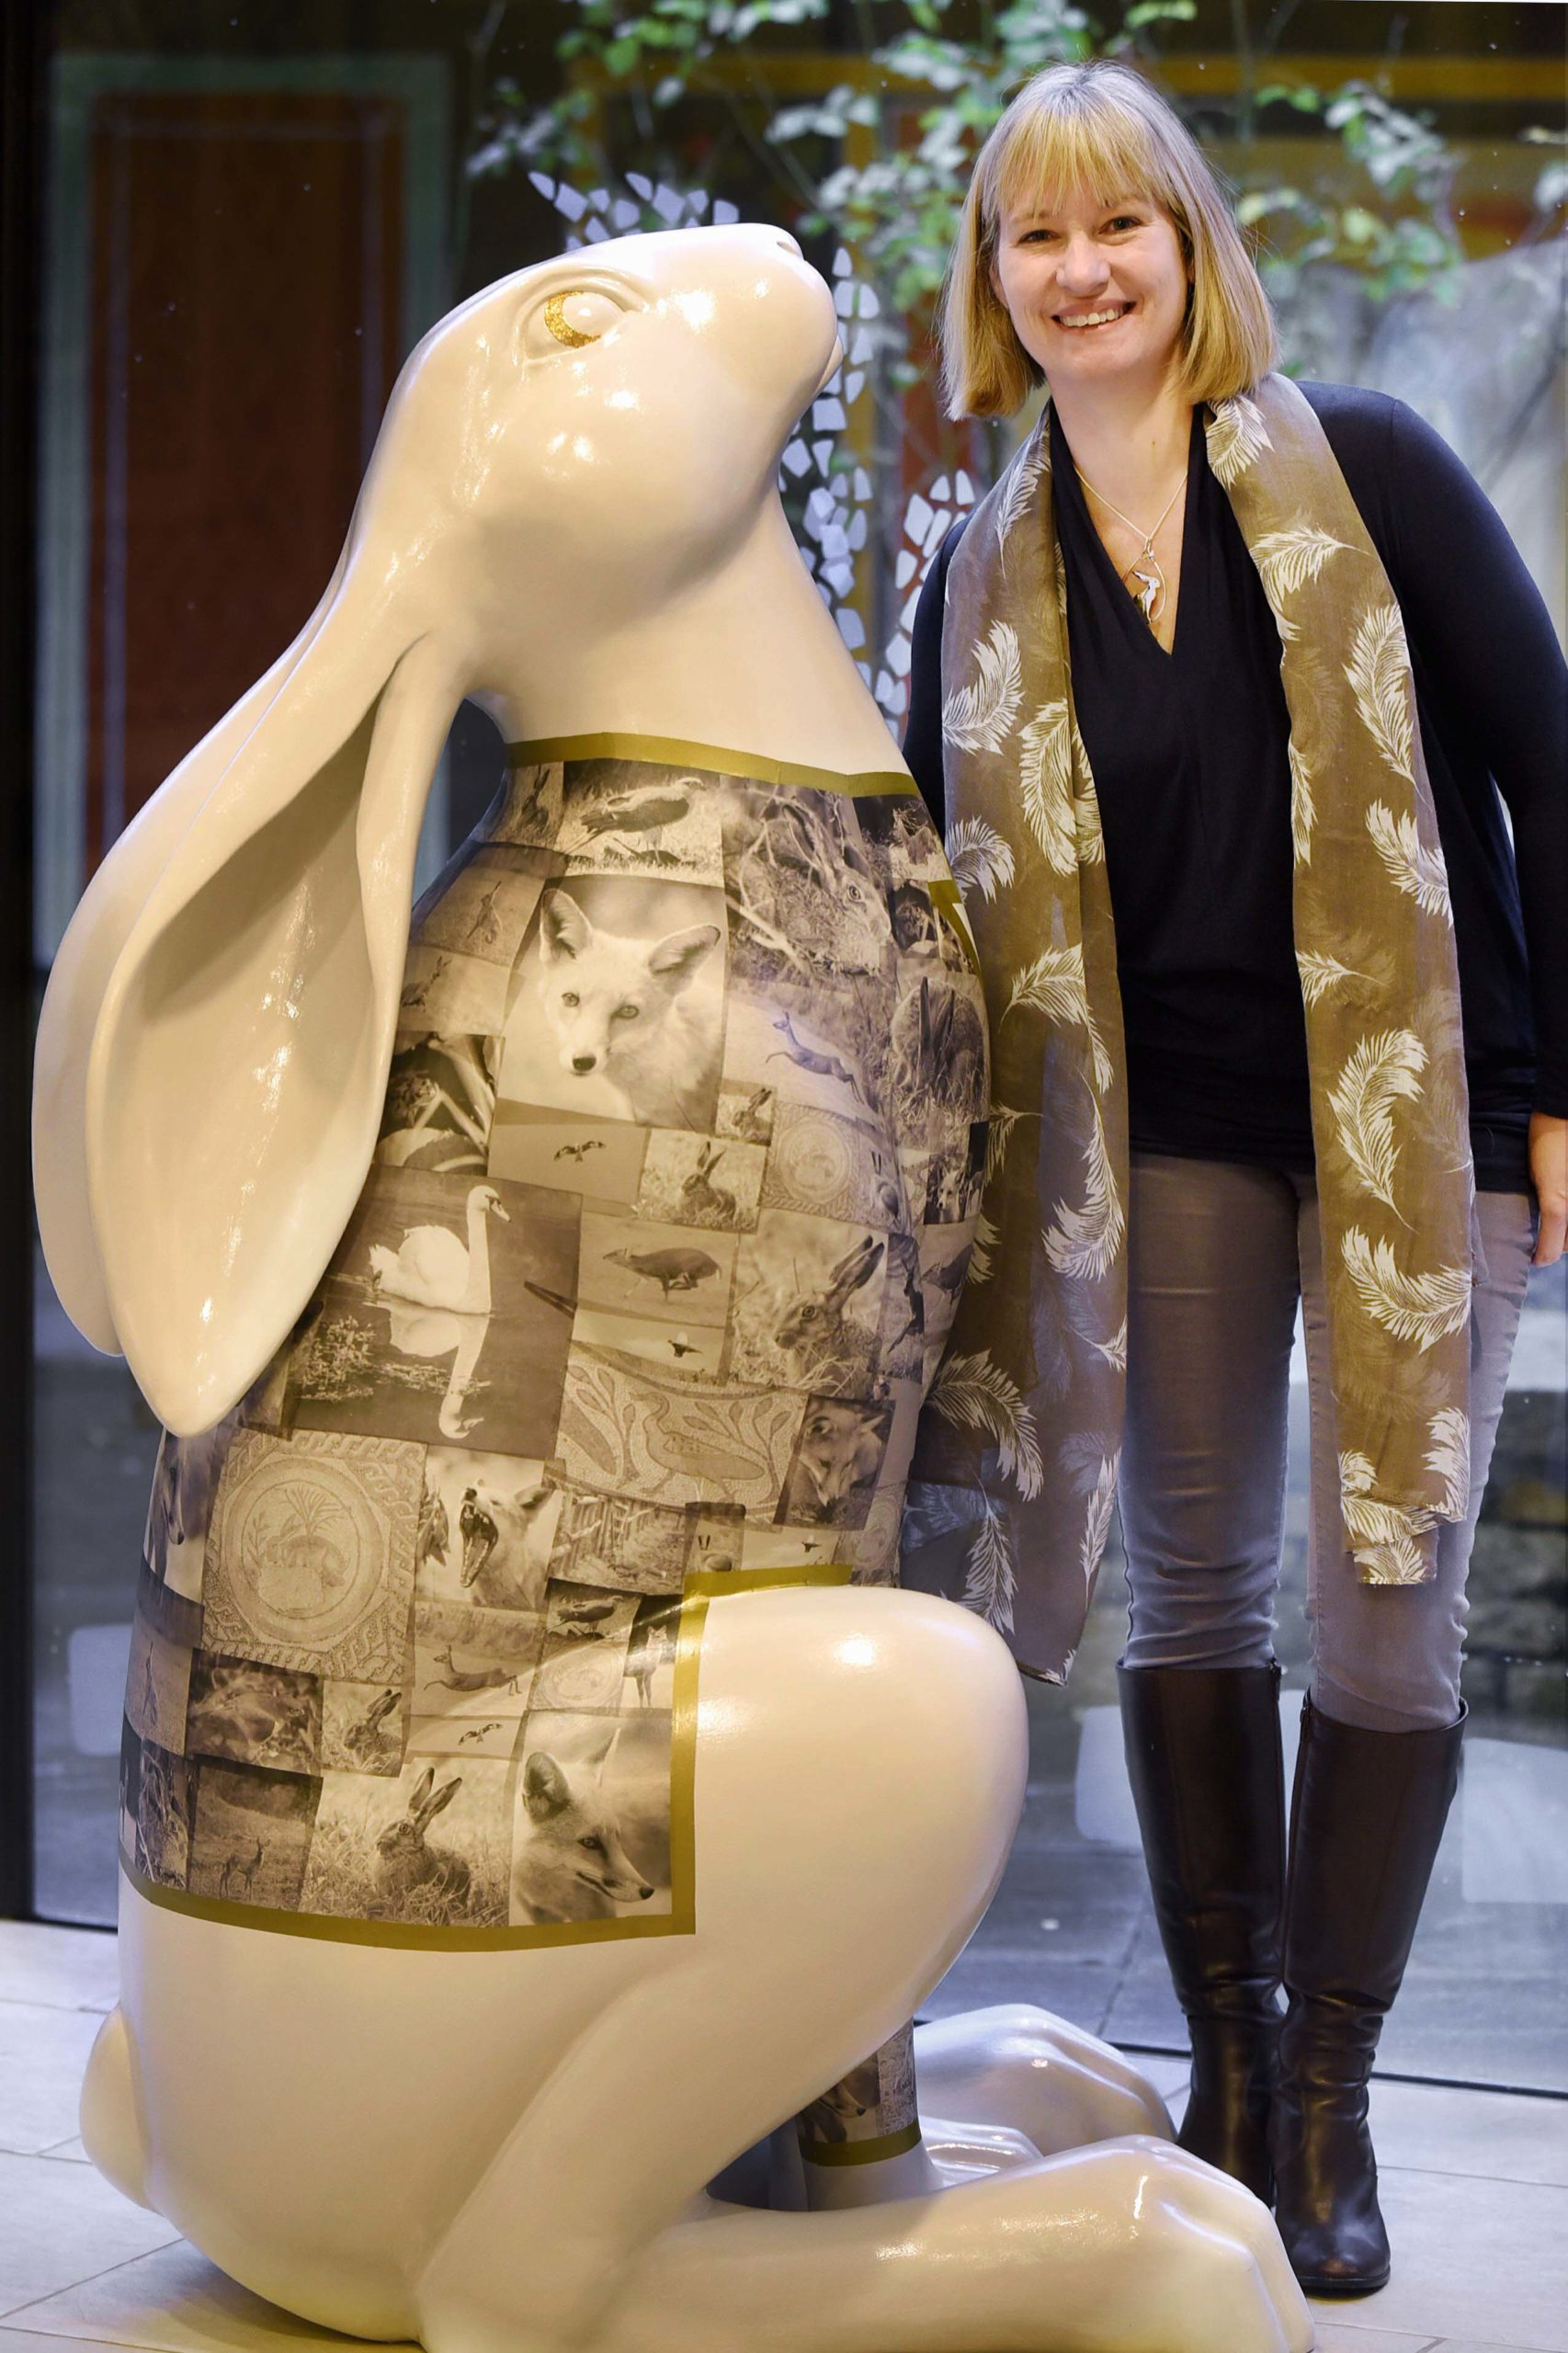 Cotswold Wedding Photographer, Helen Richmond, Corinium Museum, Stood next to large beige hare covered with Helen's photographs